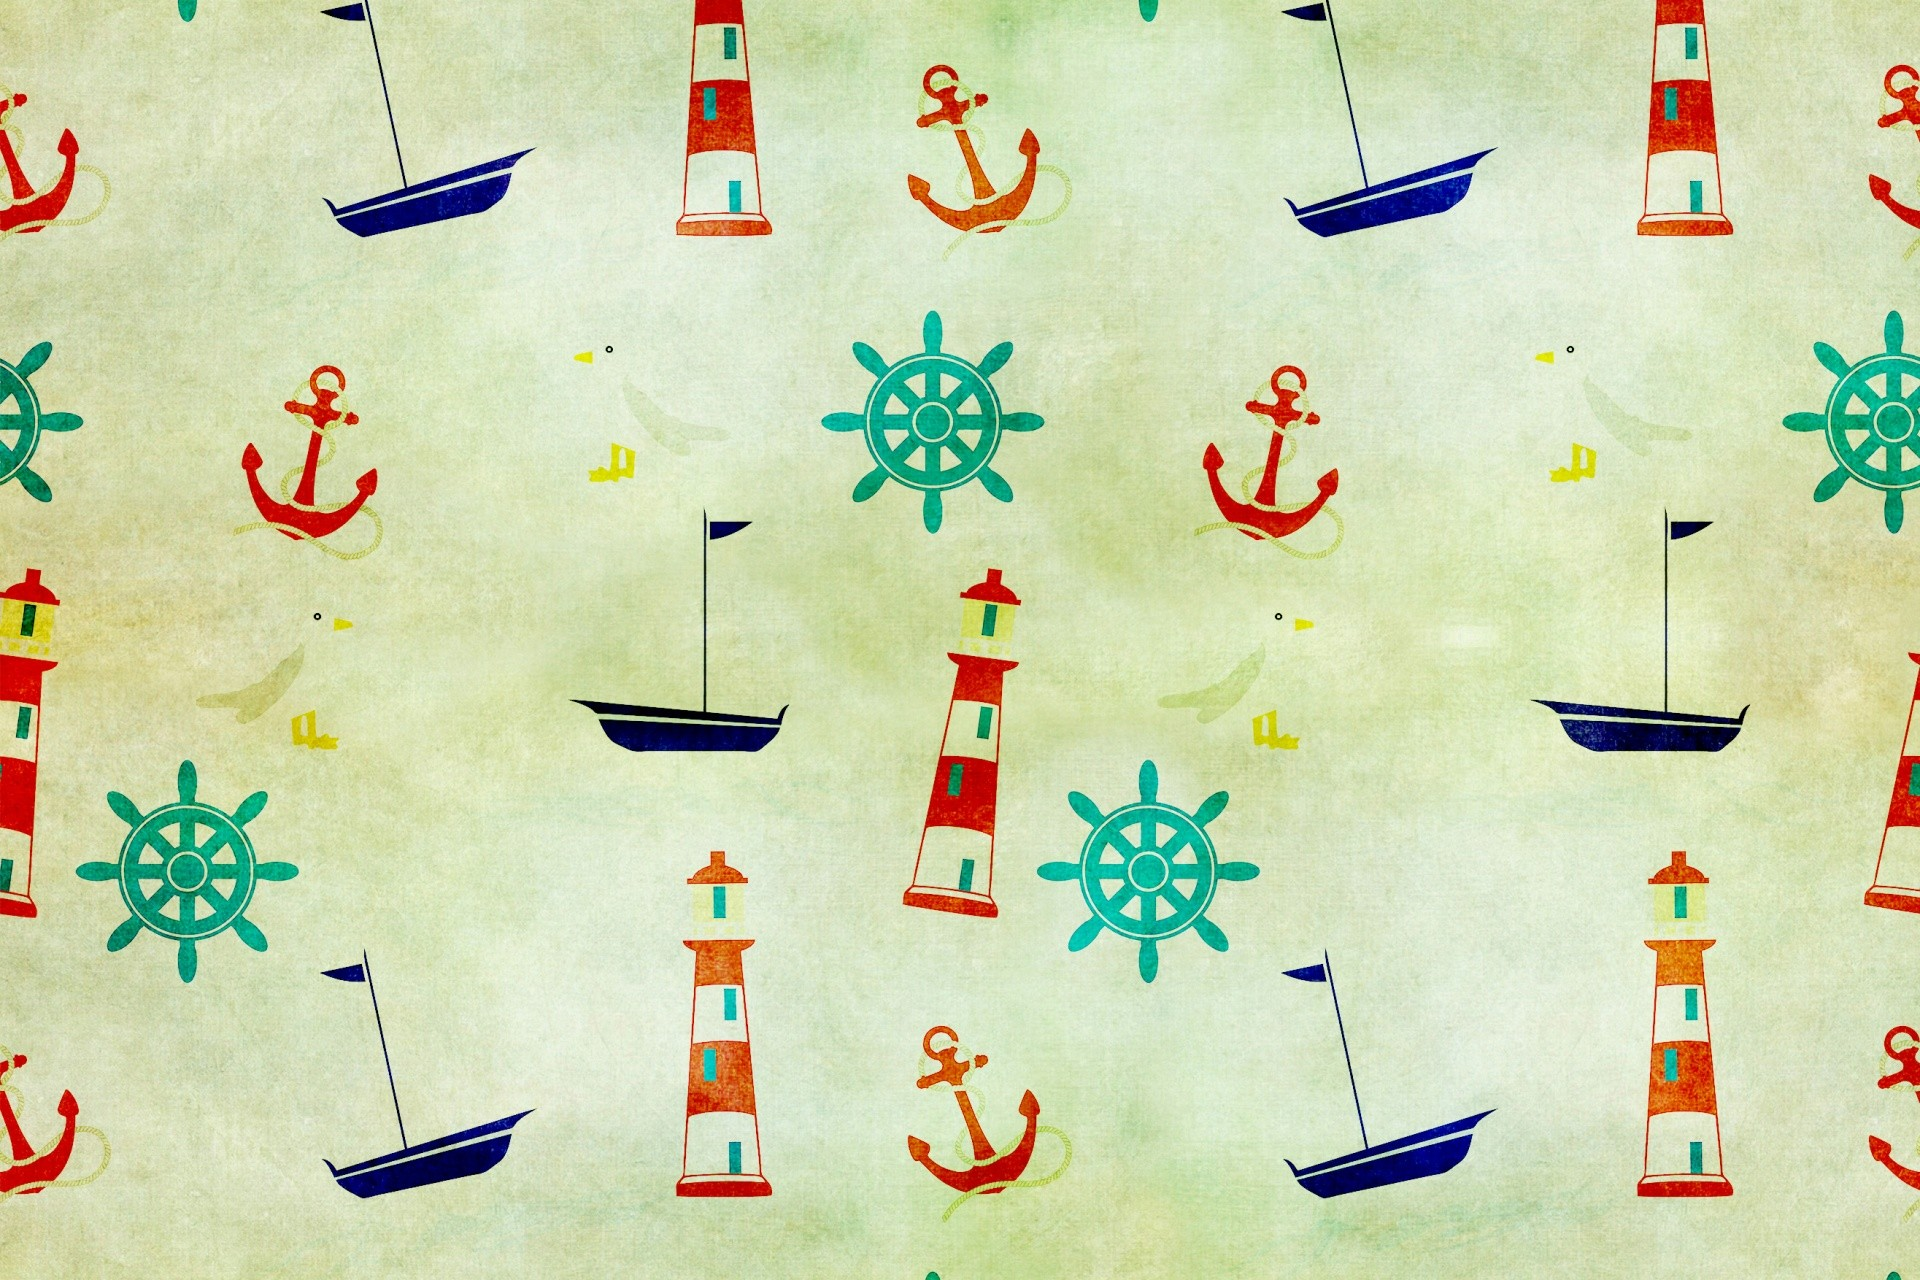 Res: 1920x1280, Nautical Wallpaper Vintage Free Stock Photo - Public .